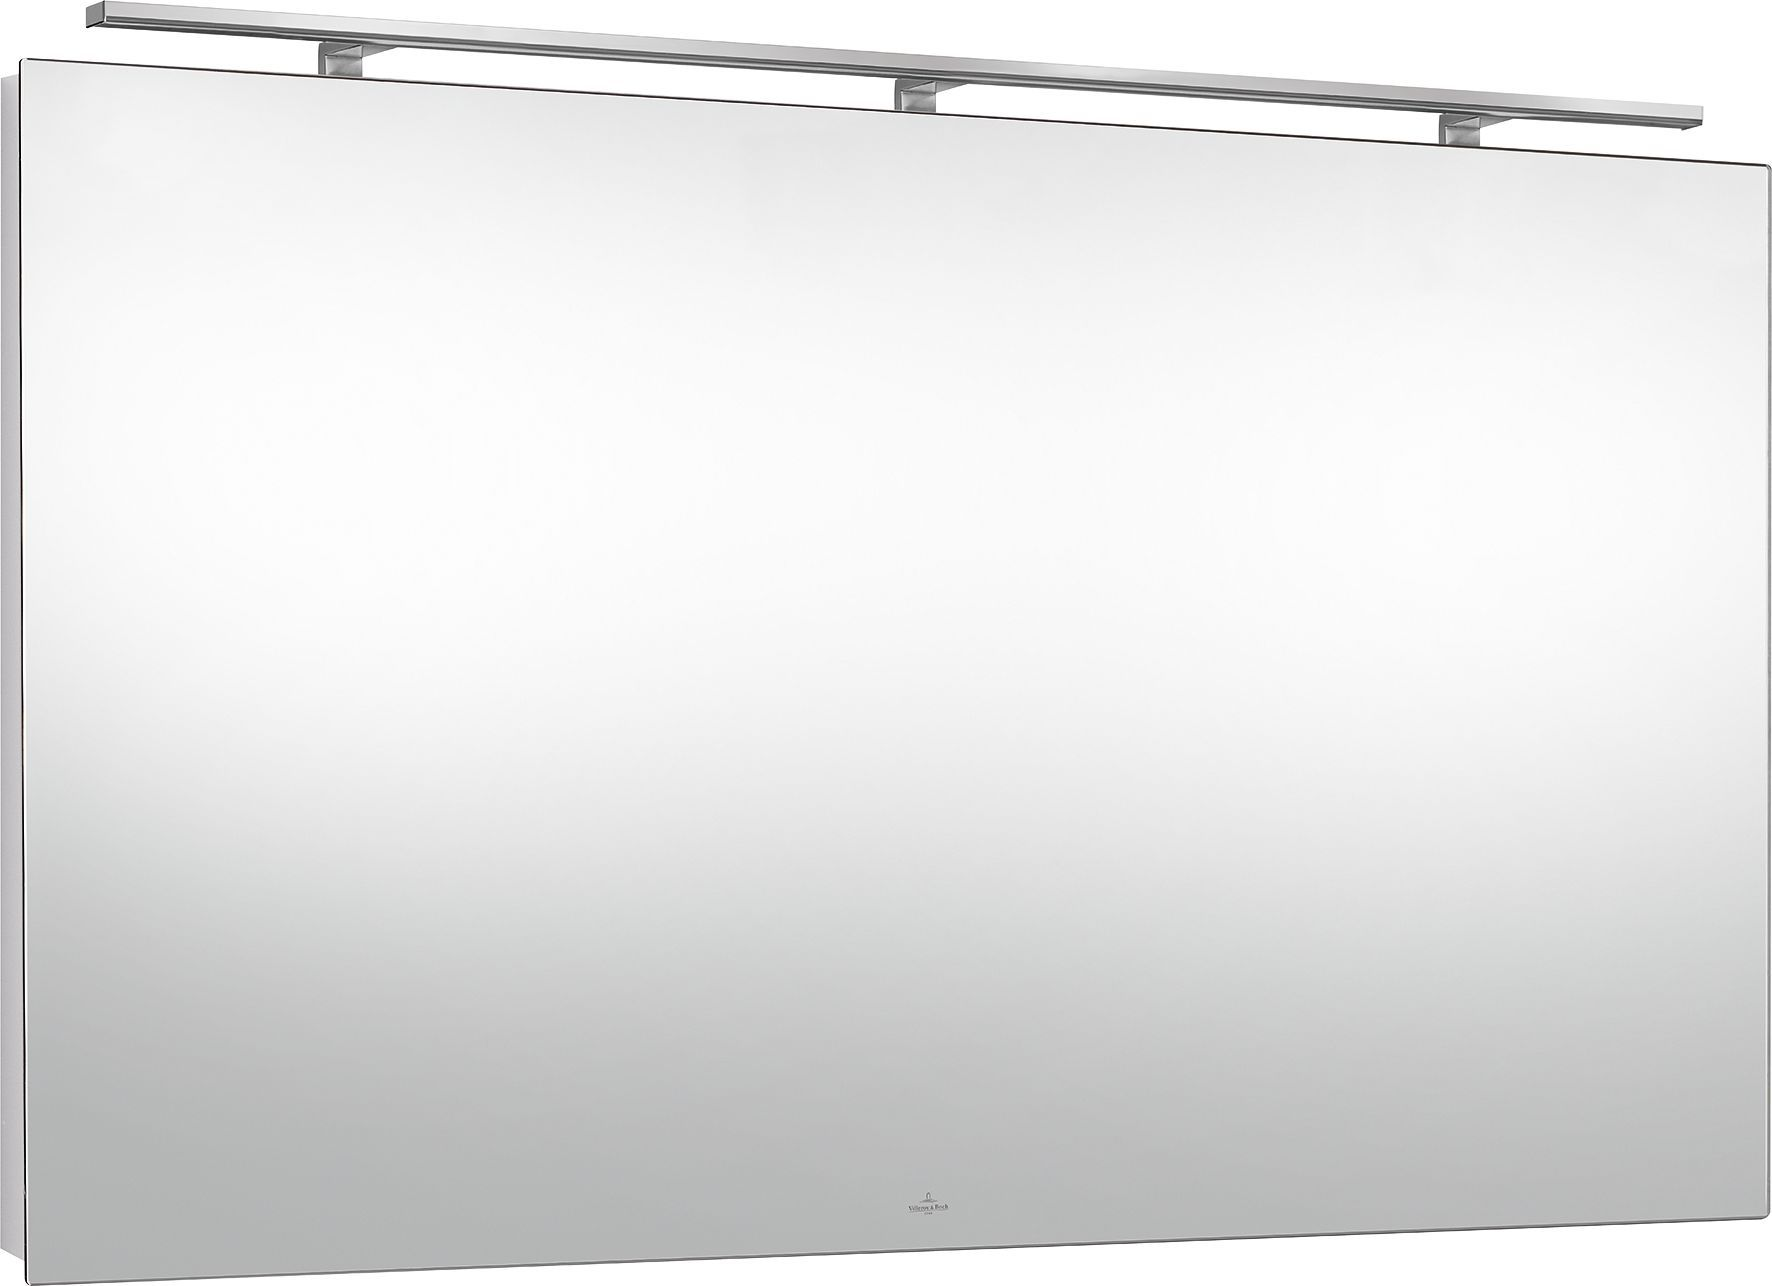 Villeroy & Boch More to See Spiegel mit LED-Beleuchtung 1200x750x50/130 A4041200